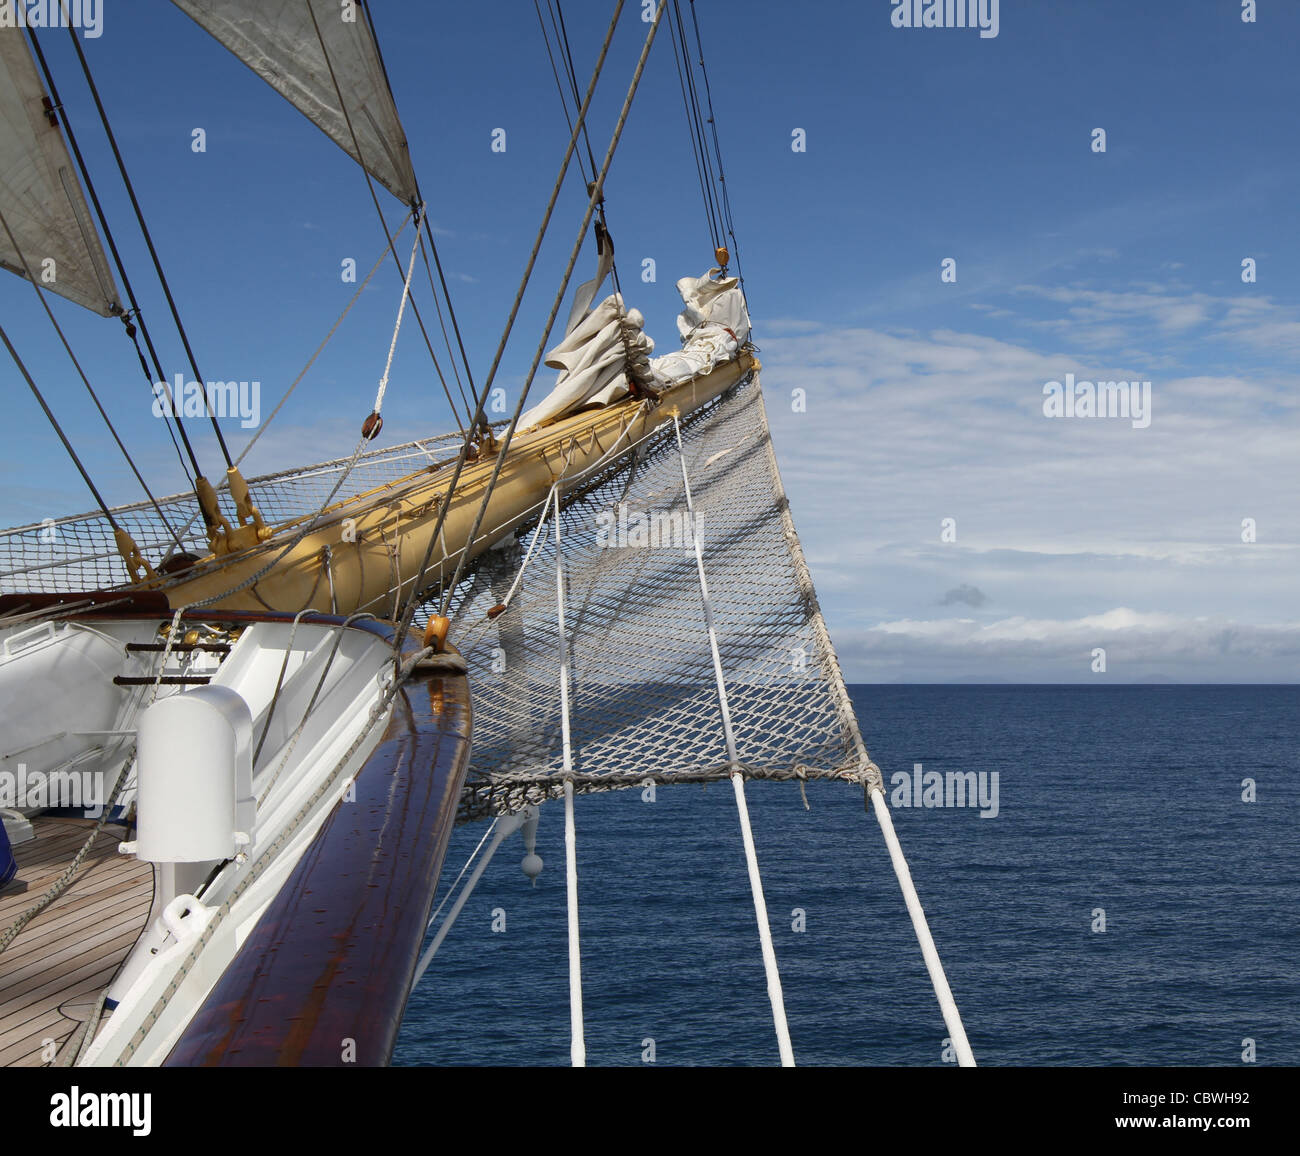 Bowsprit and rigging on square-rigged sailing ship 'Royal Clipper' - Stock Image